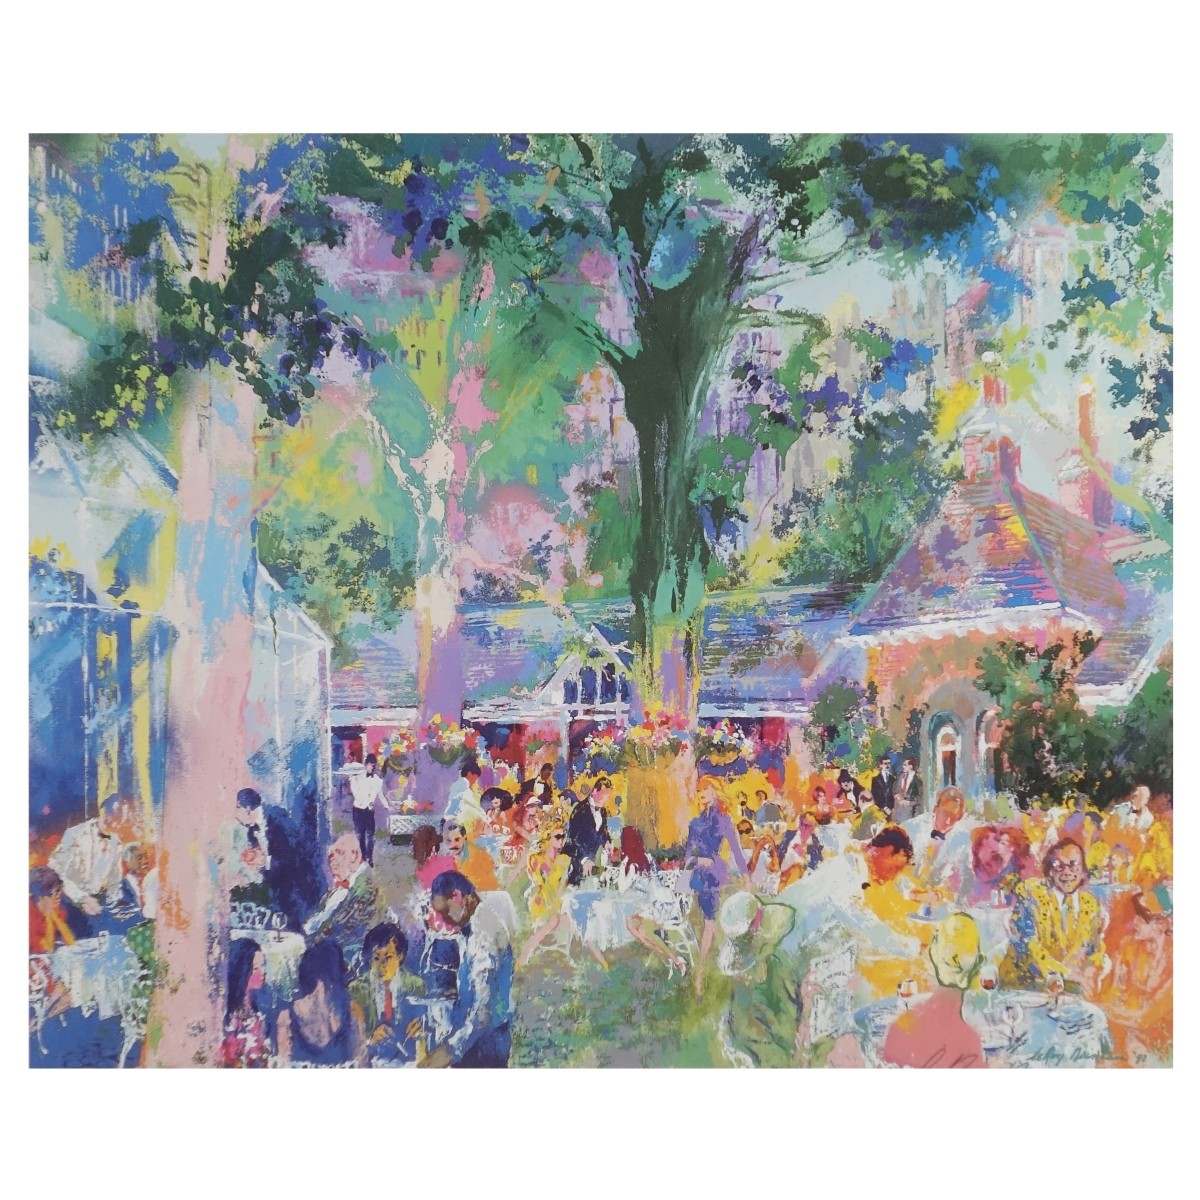 After: LeRoy Neiman, American (1921 - 2012)